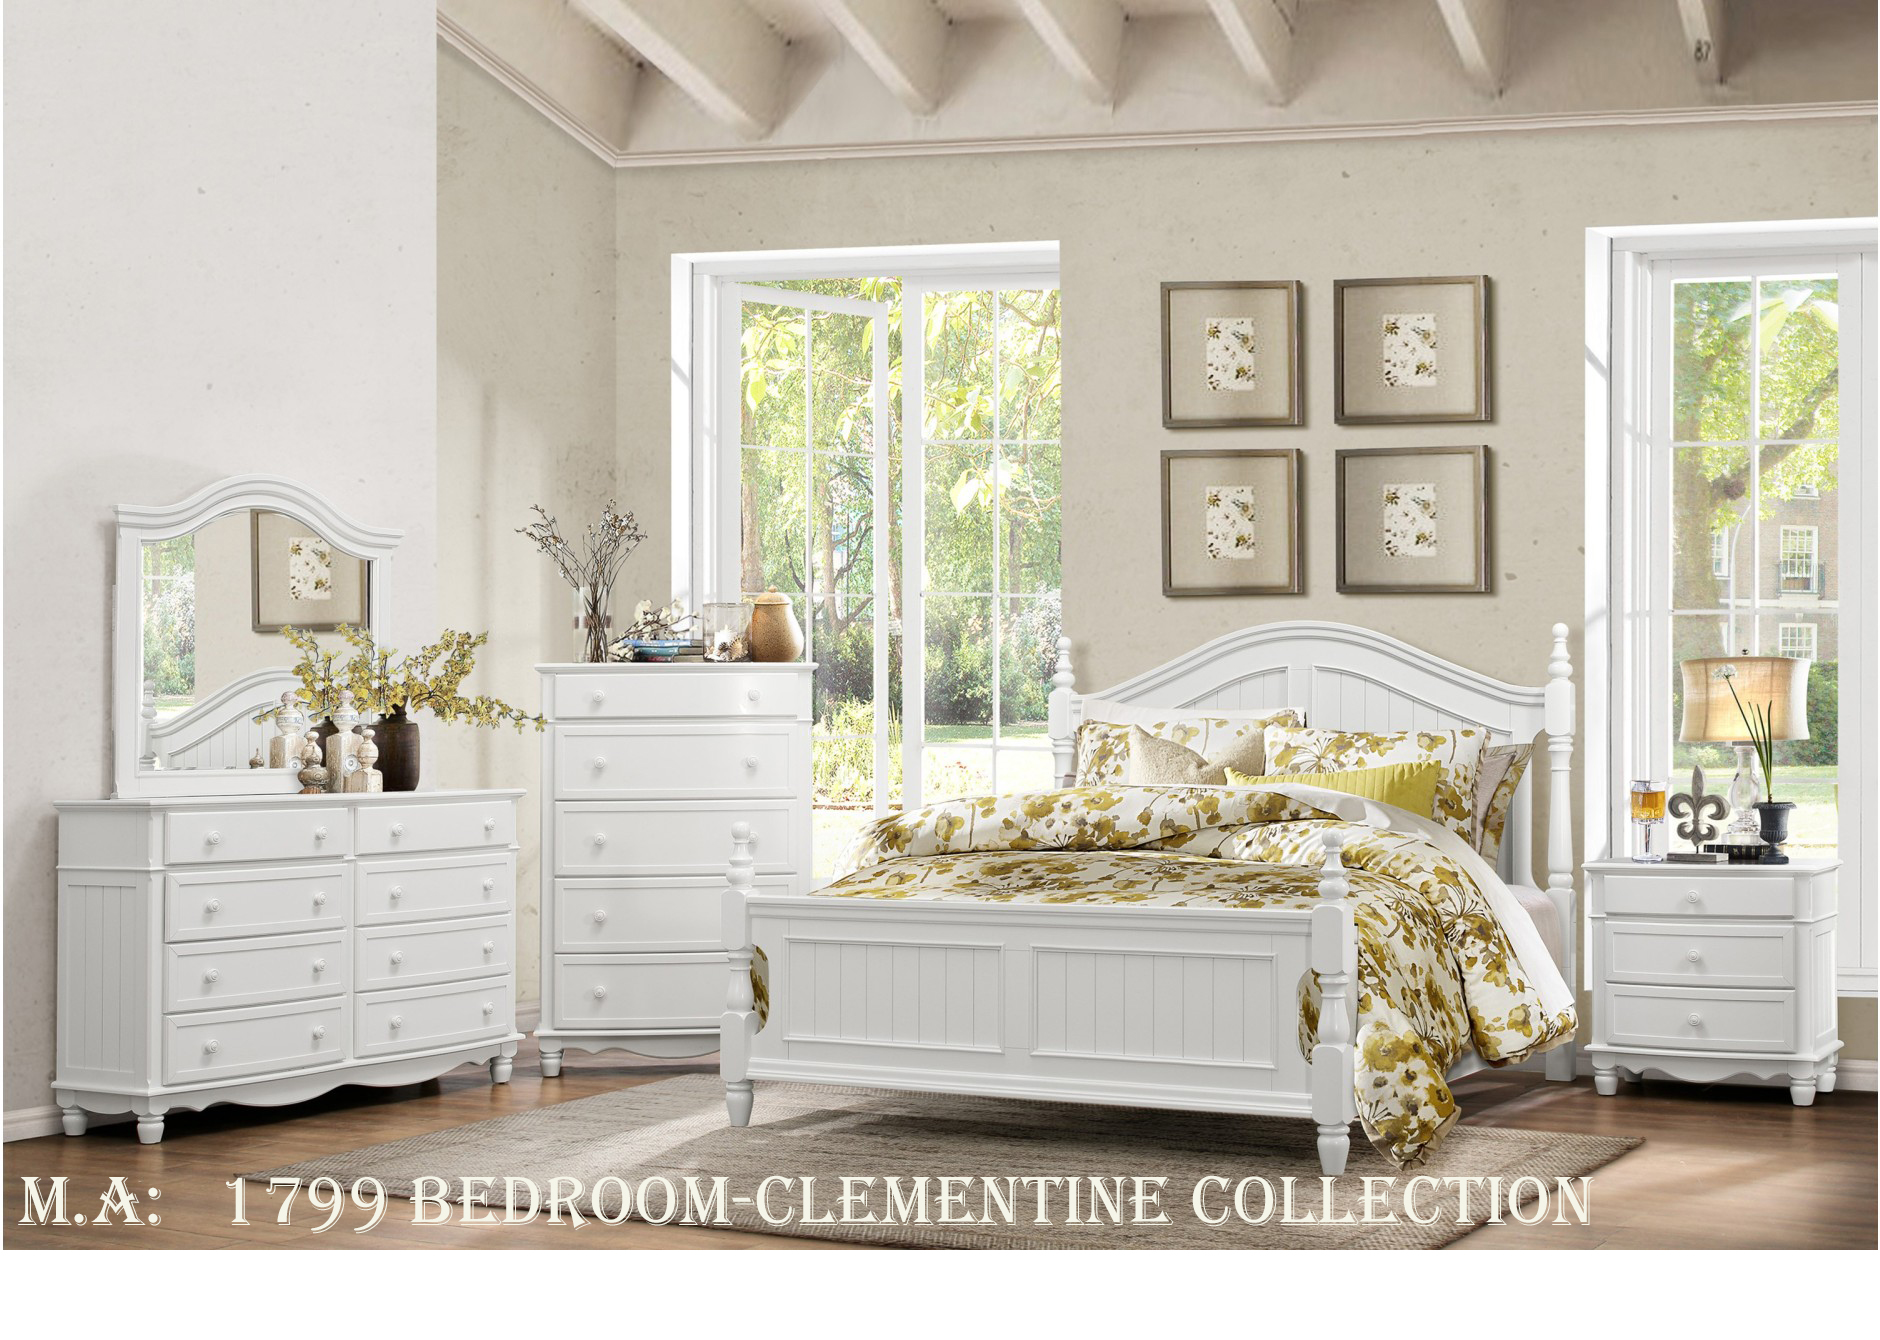 1799 Bedroom-Clementine Collection